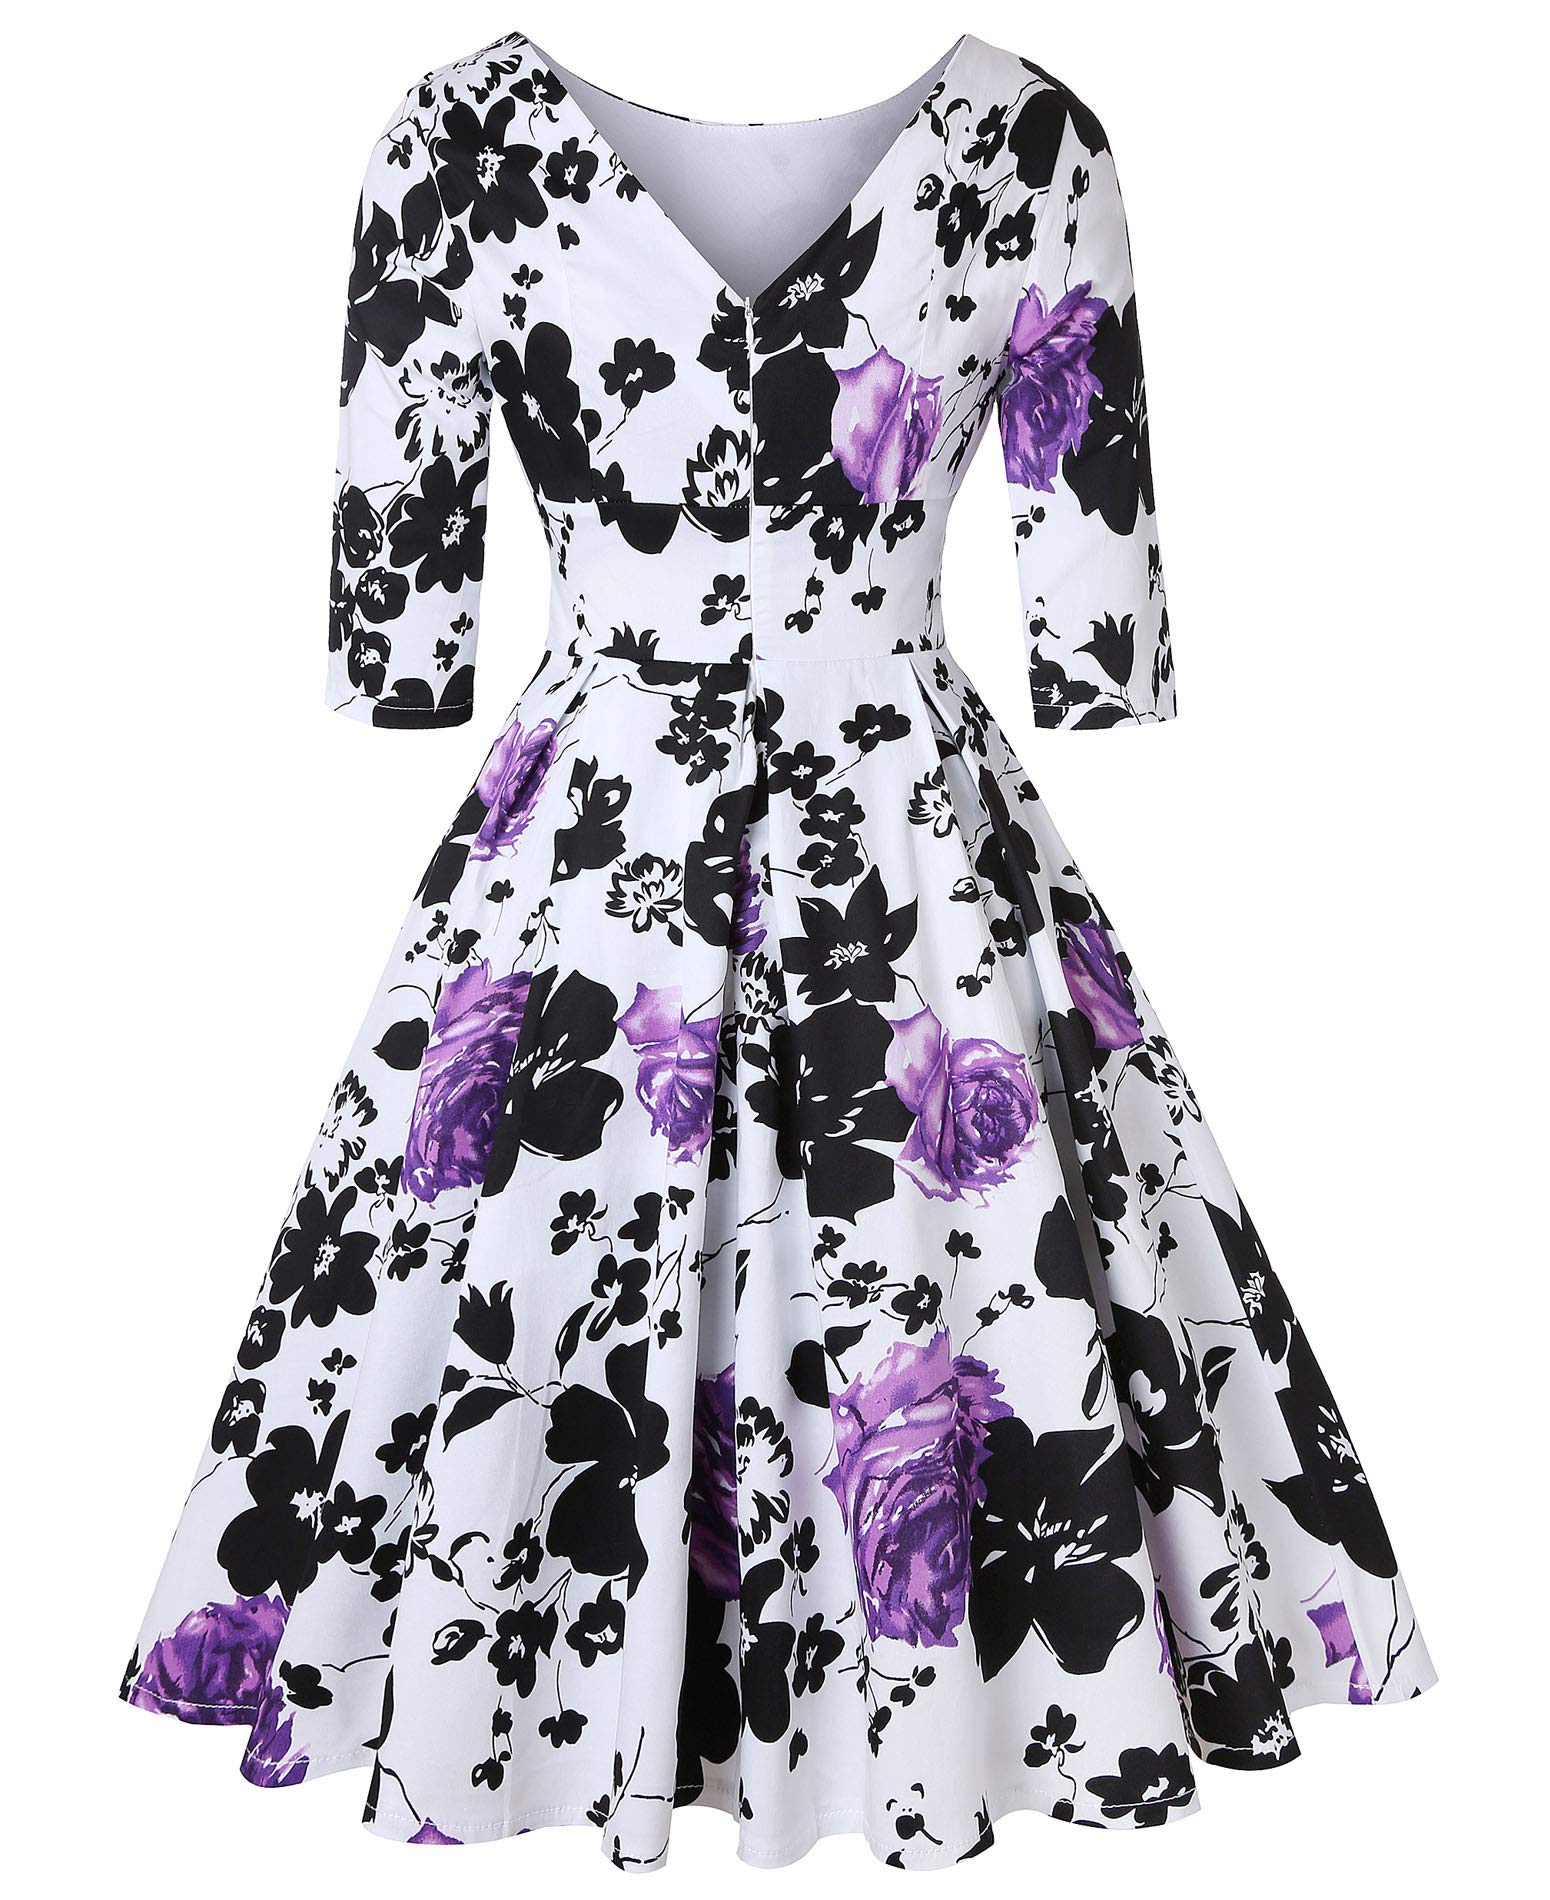 ROOSEY Women's 50s Style Swing Dress Vintage Retro Cocktail Evening Formal Dress by ROOSEY (Image #3)